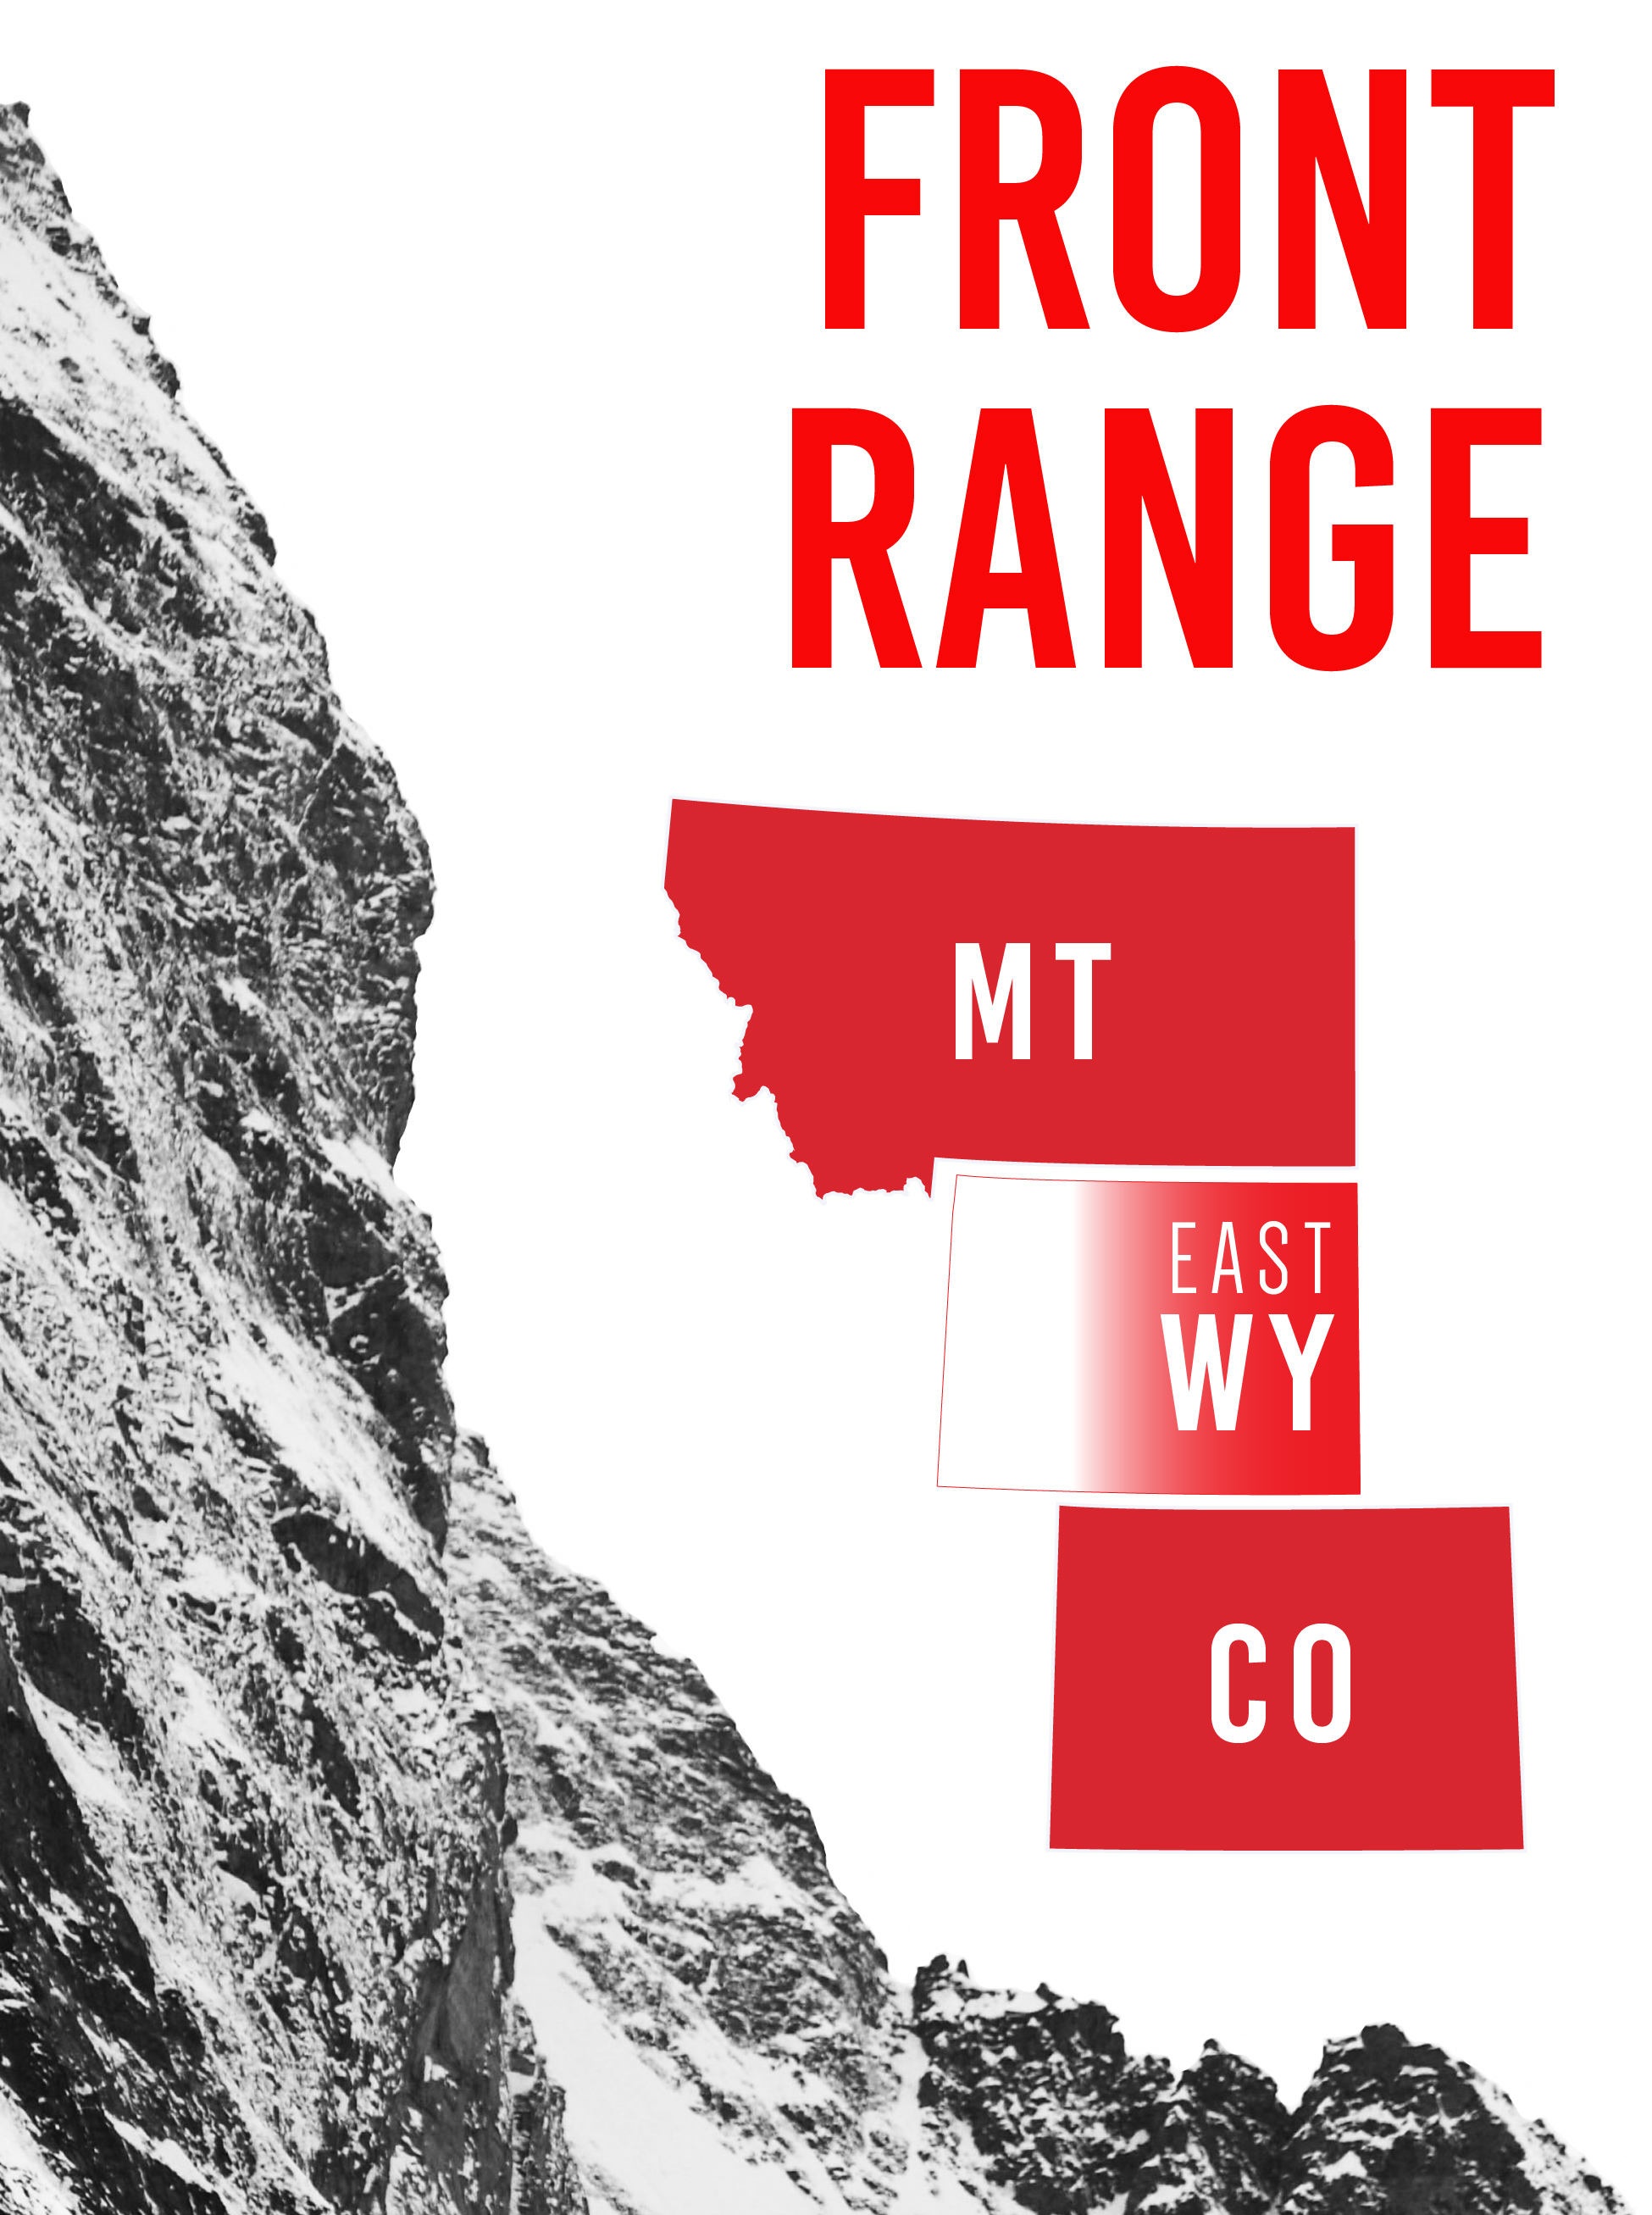 Front Range Region Branch